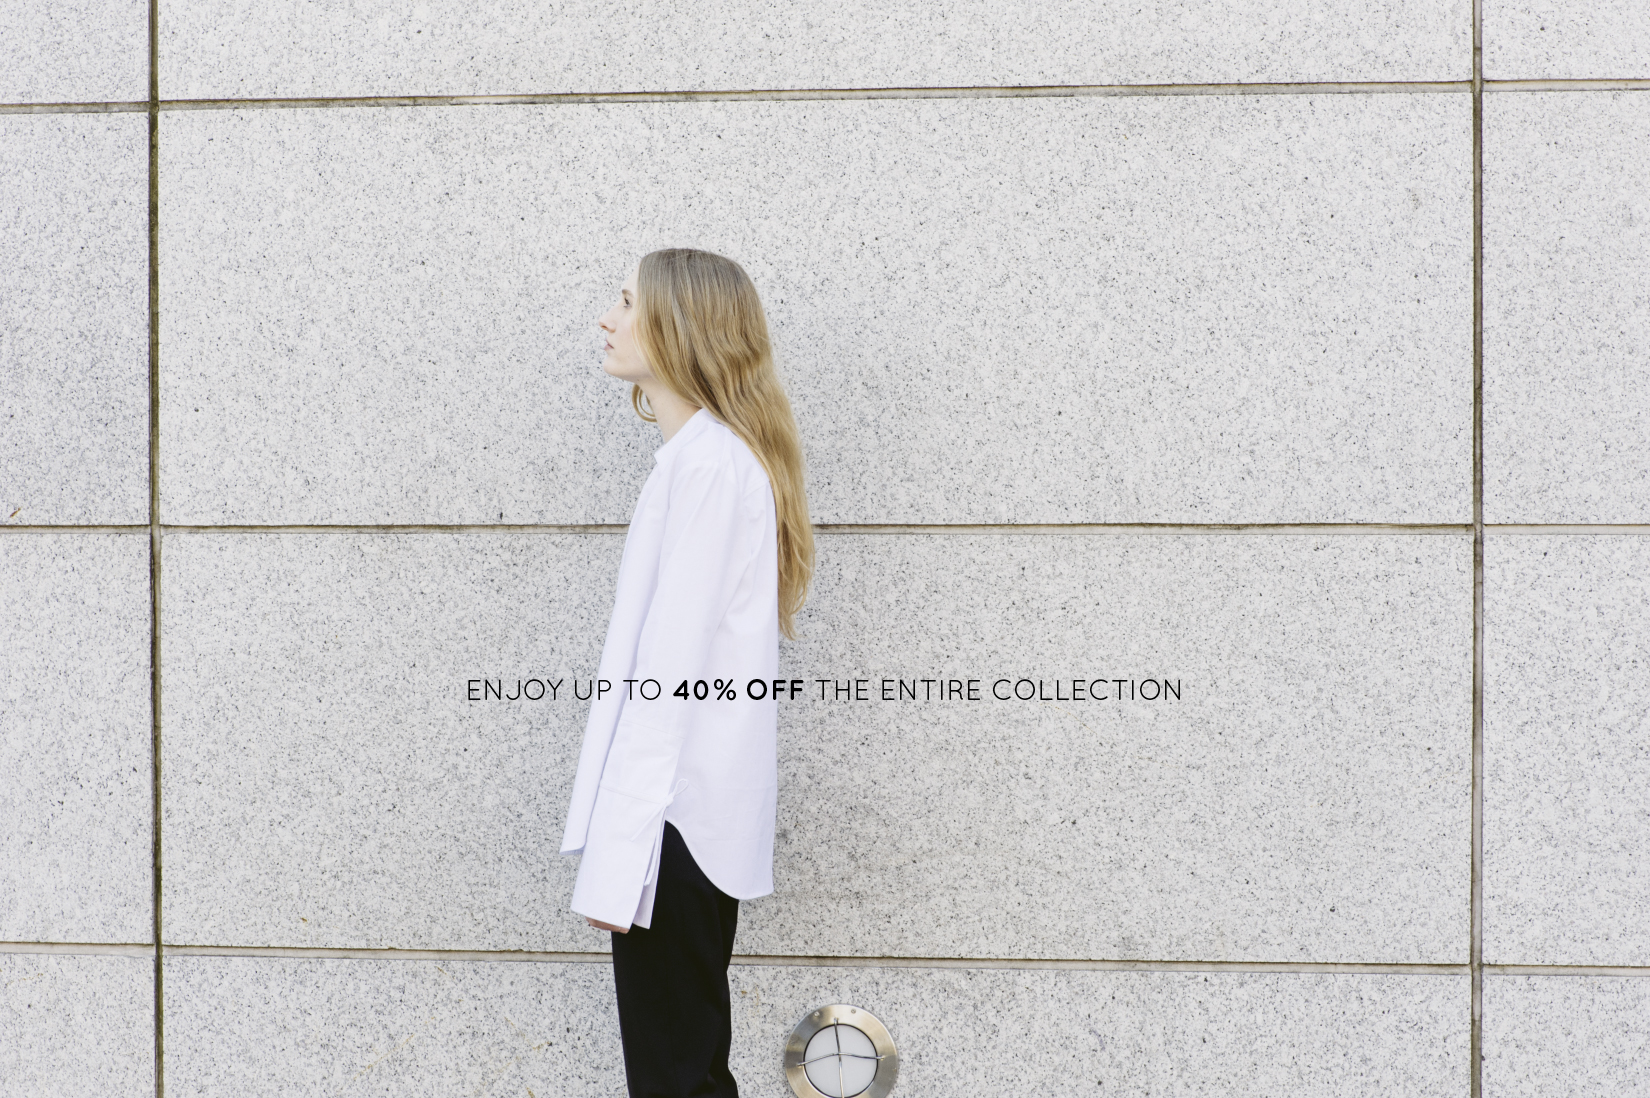 40% off entire collection